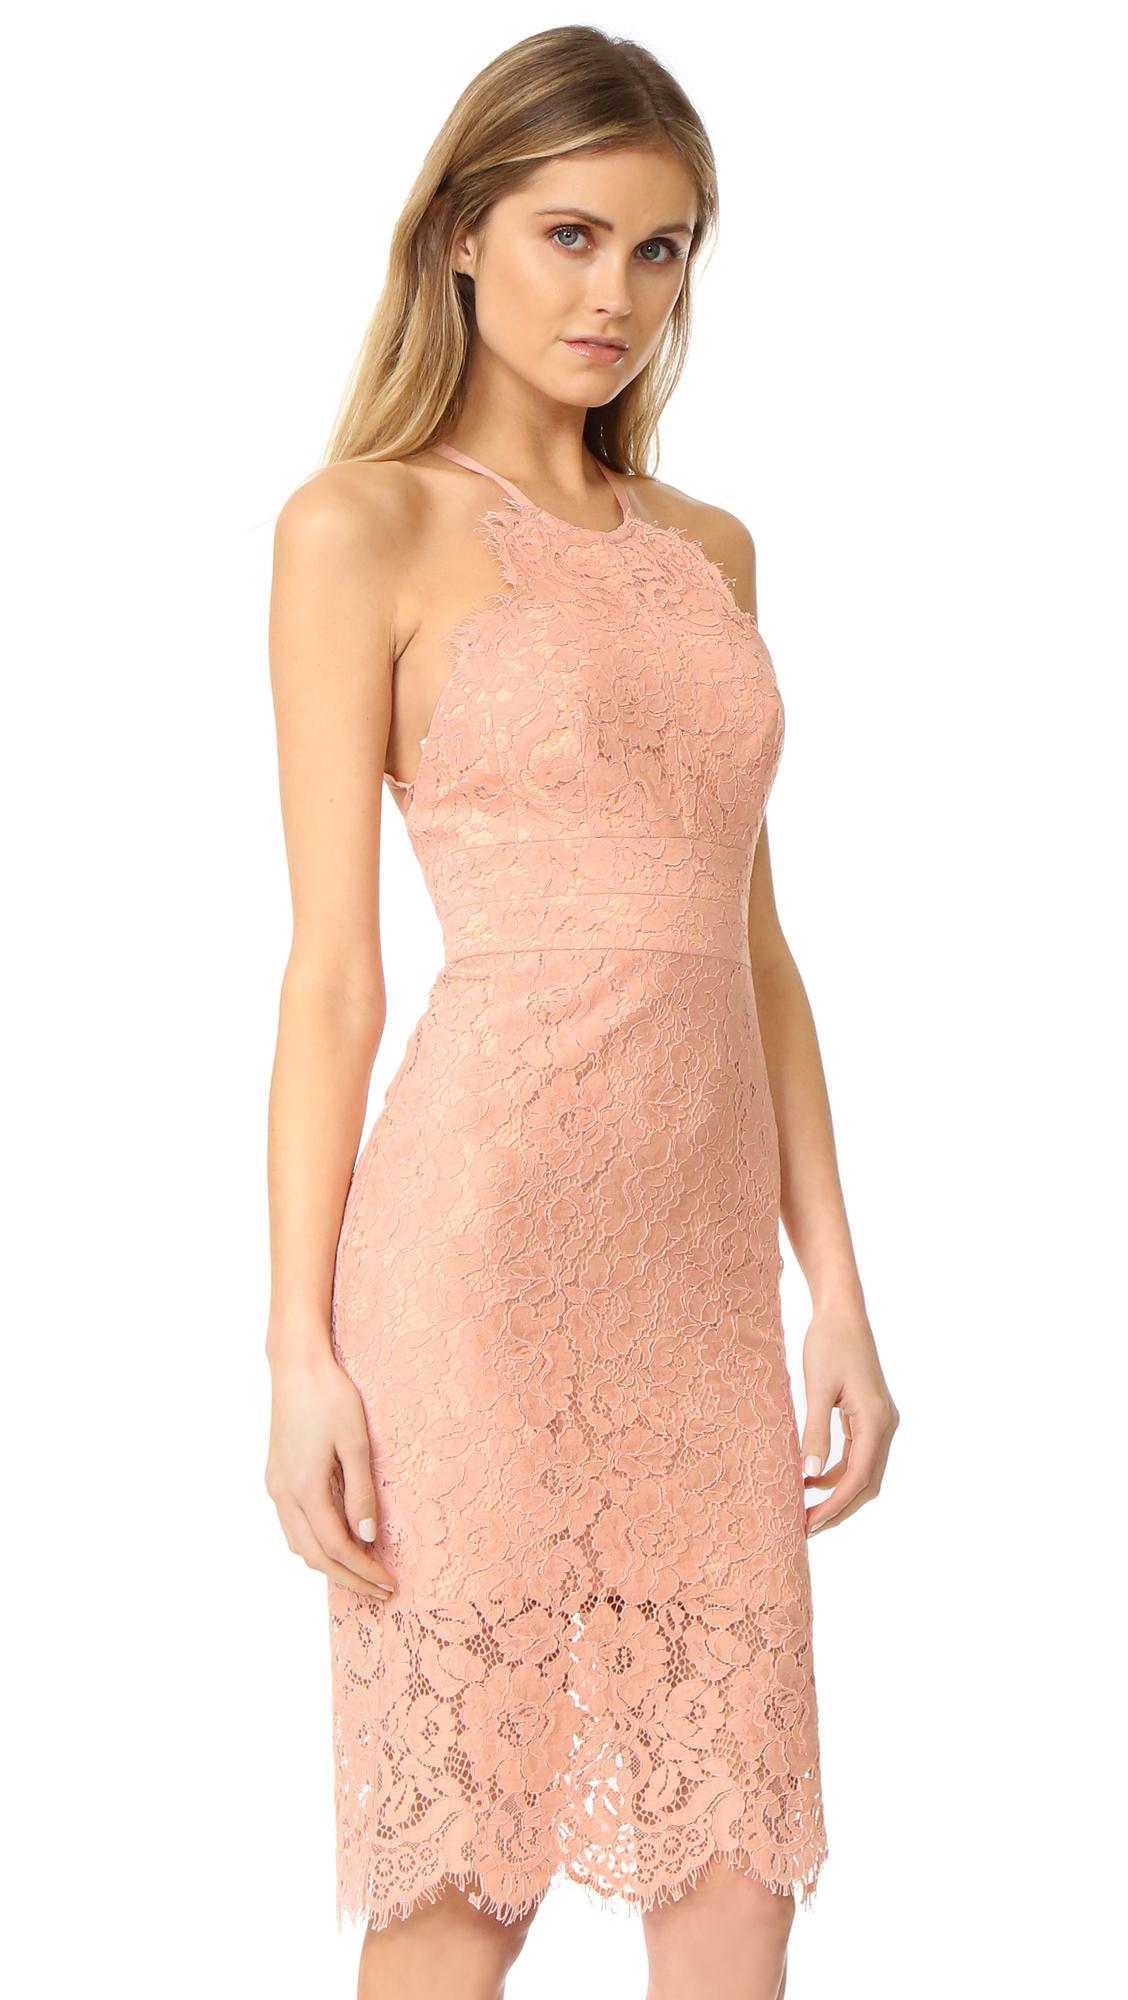 e7d5b9f60526 Lover Oasis Halter Dress in Pink - Lyst